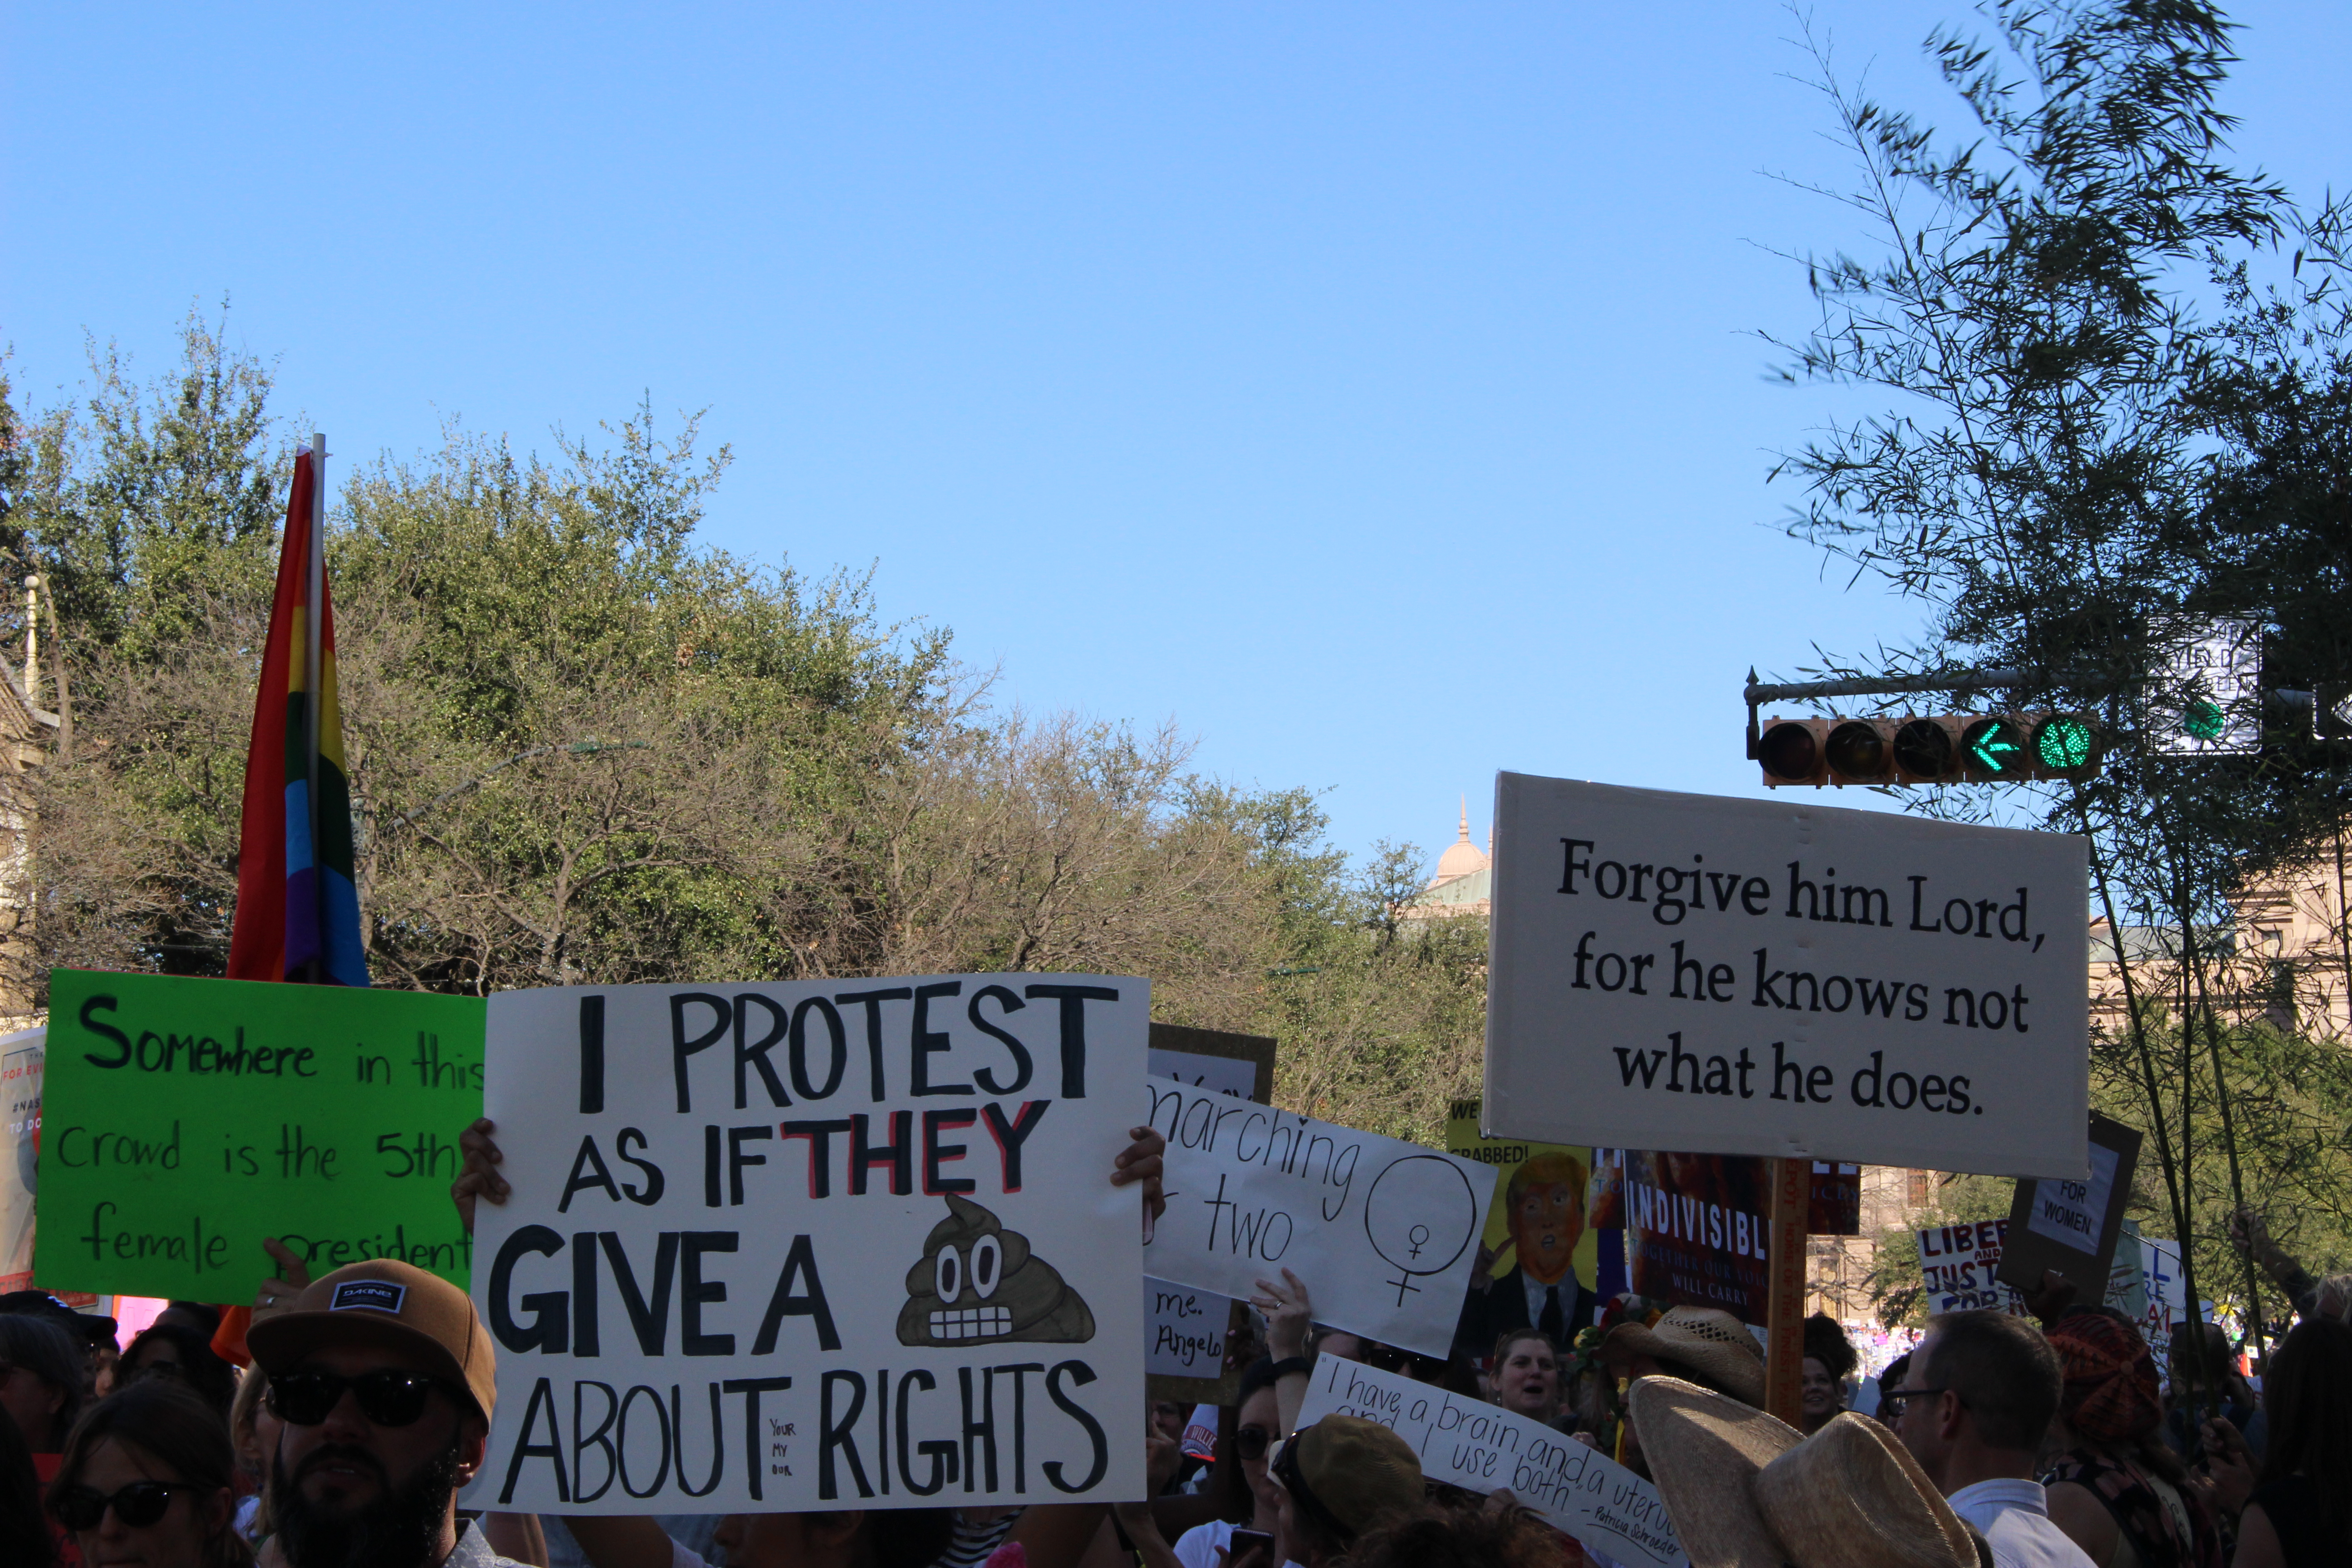 Women's March in Austin, Texas on January 21, 2017 // Taylor Gantt